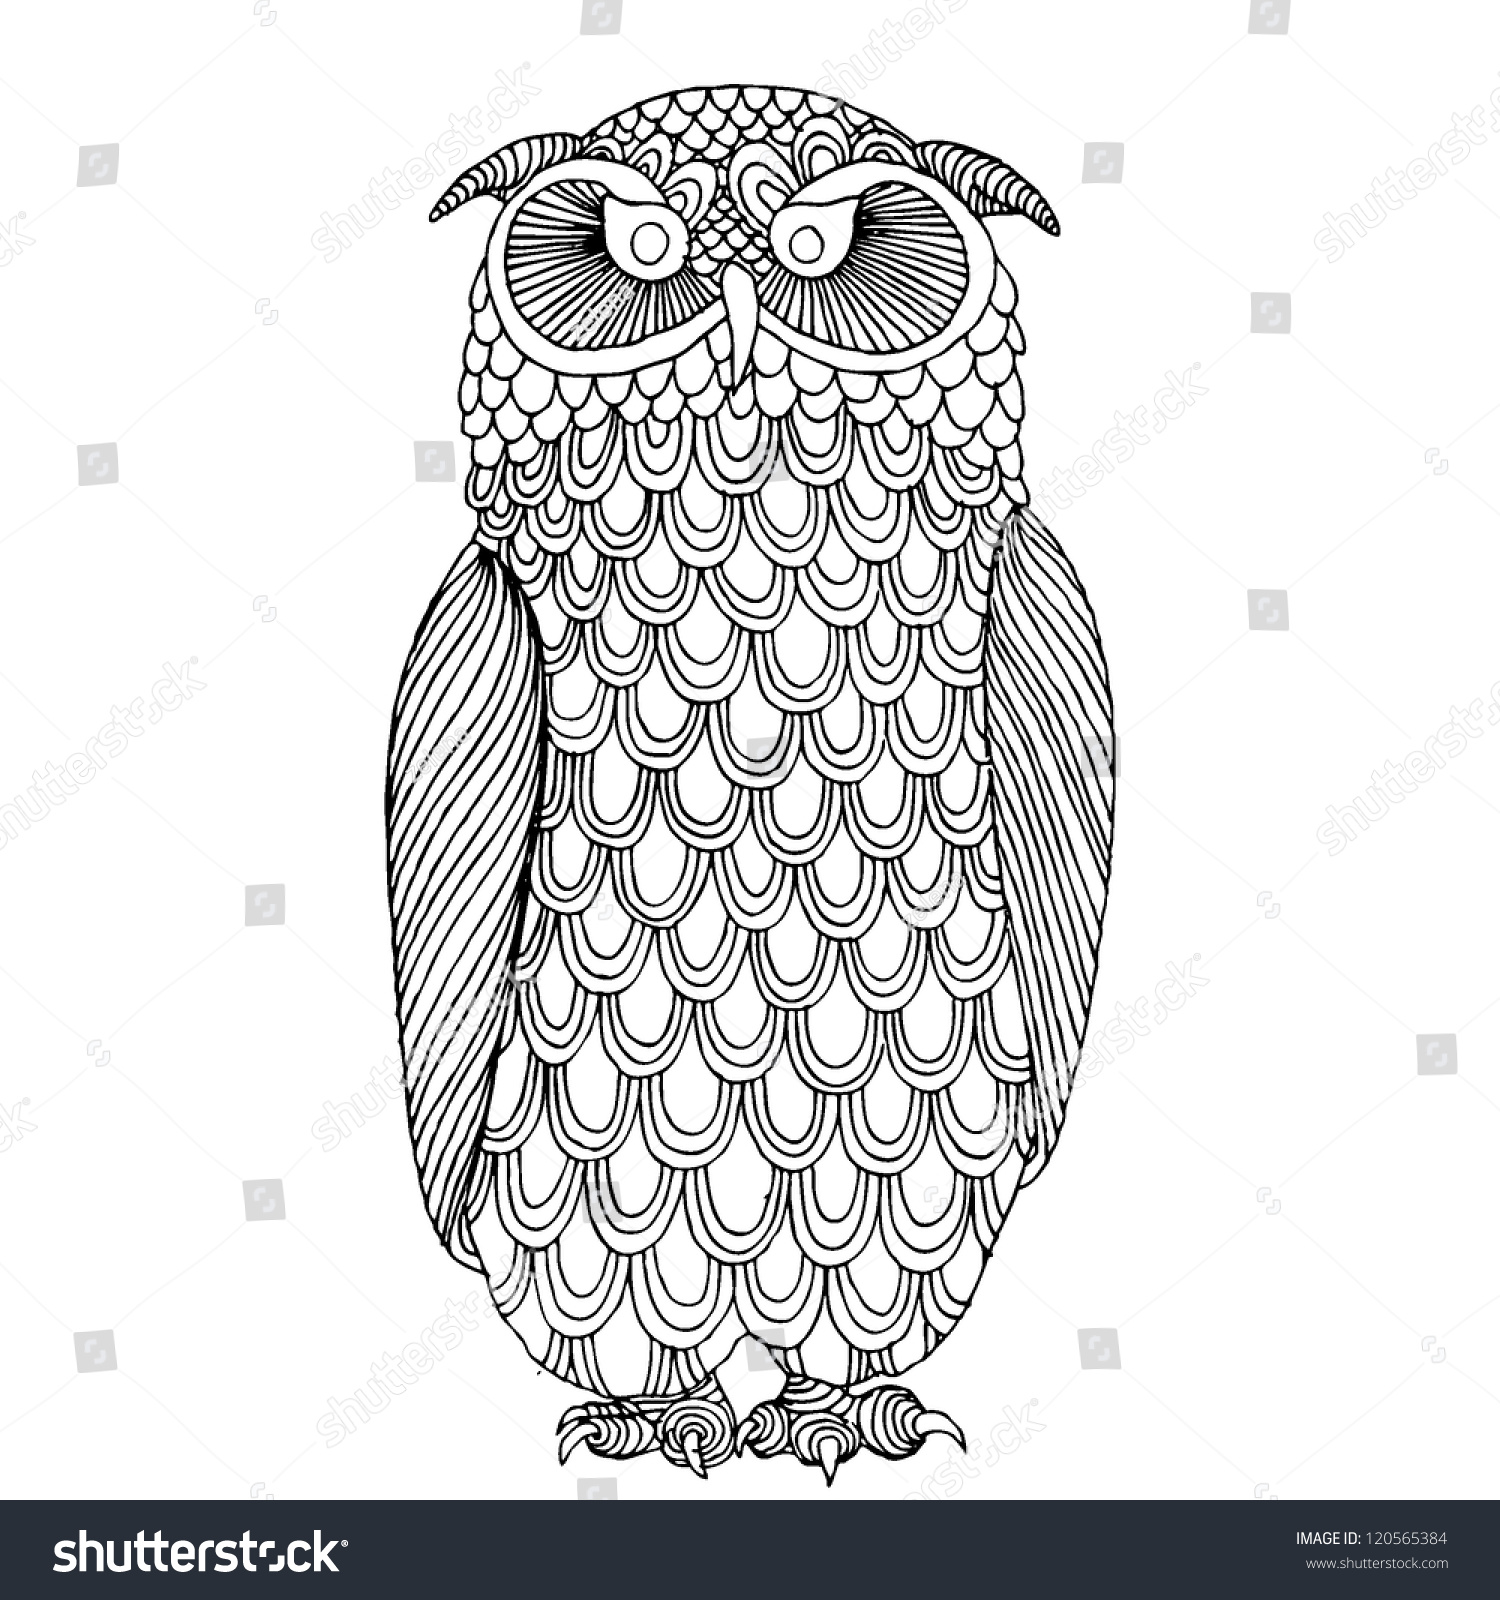 funny owl drawing - photo #25